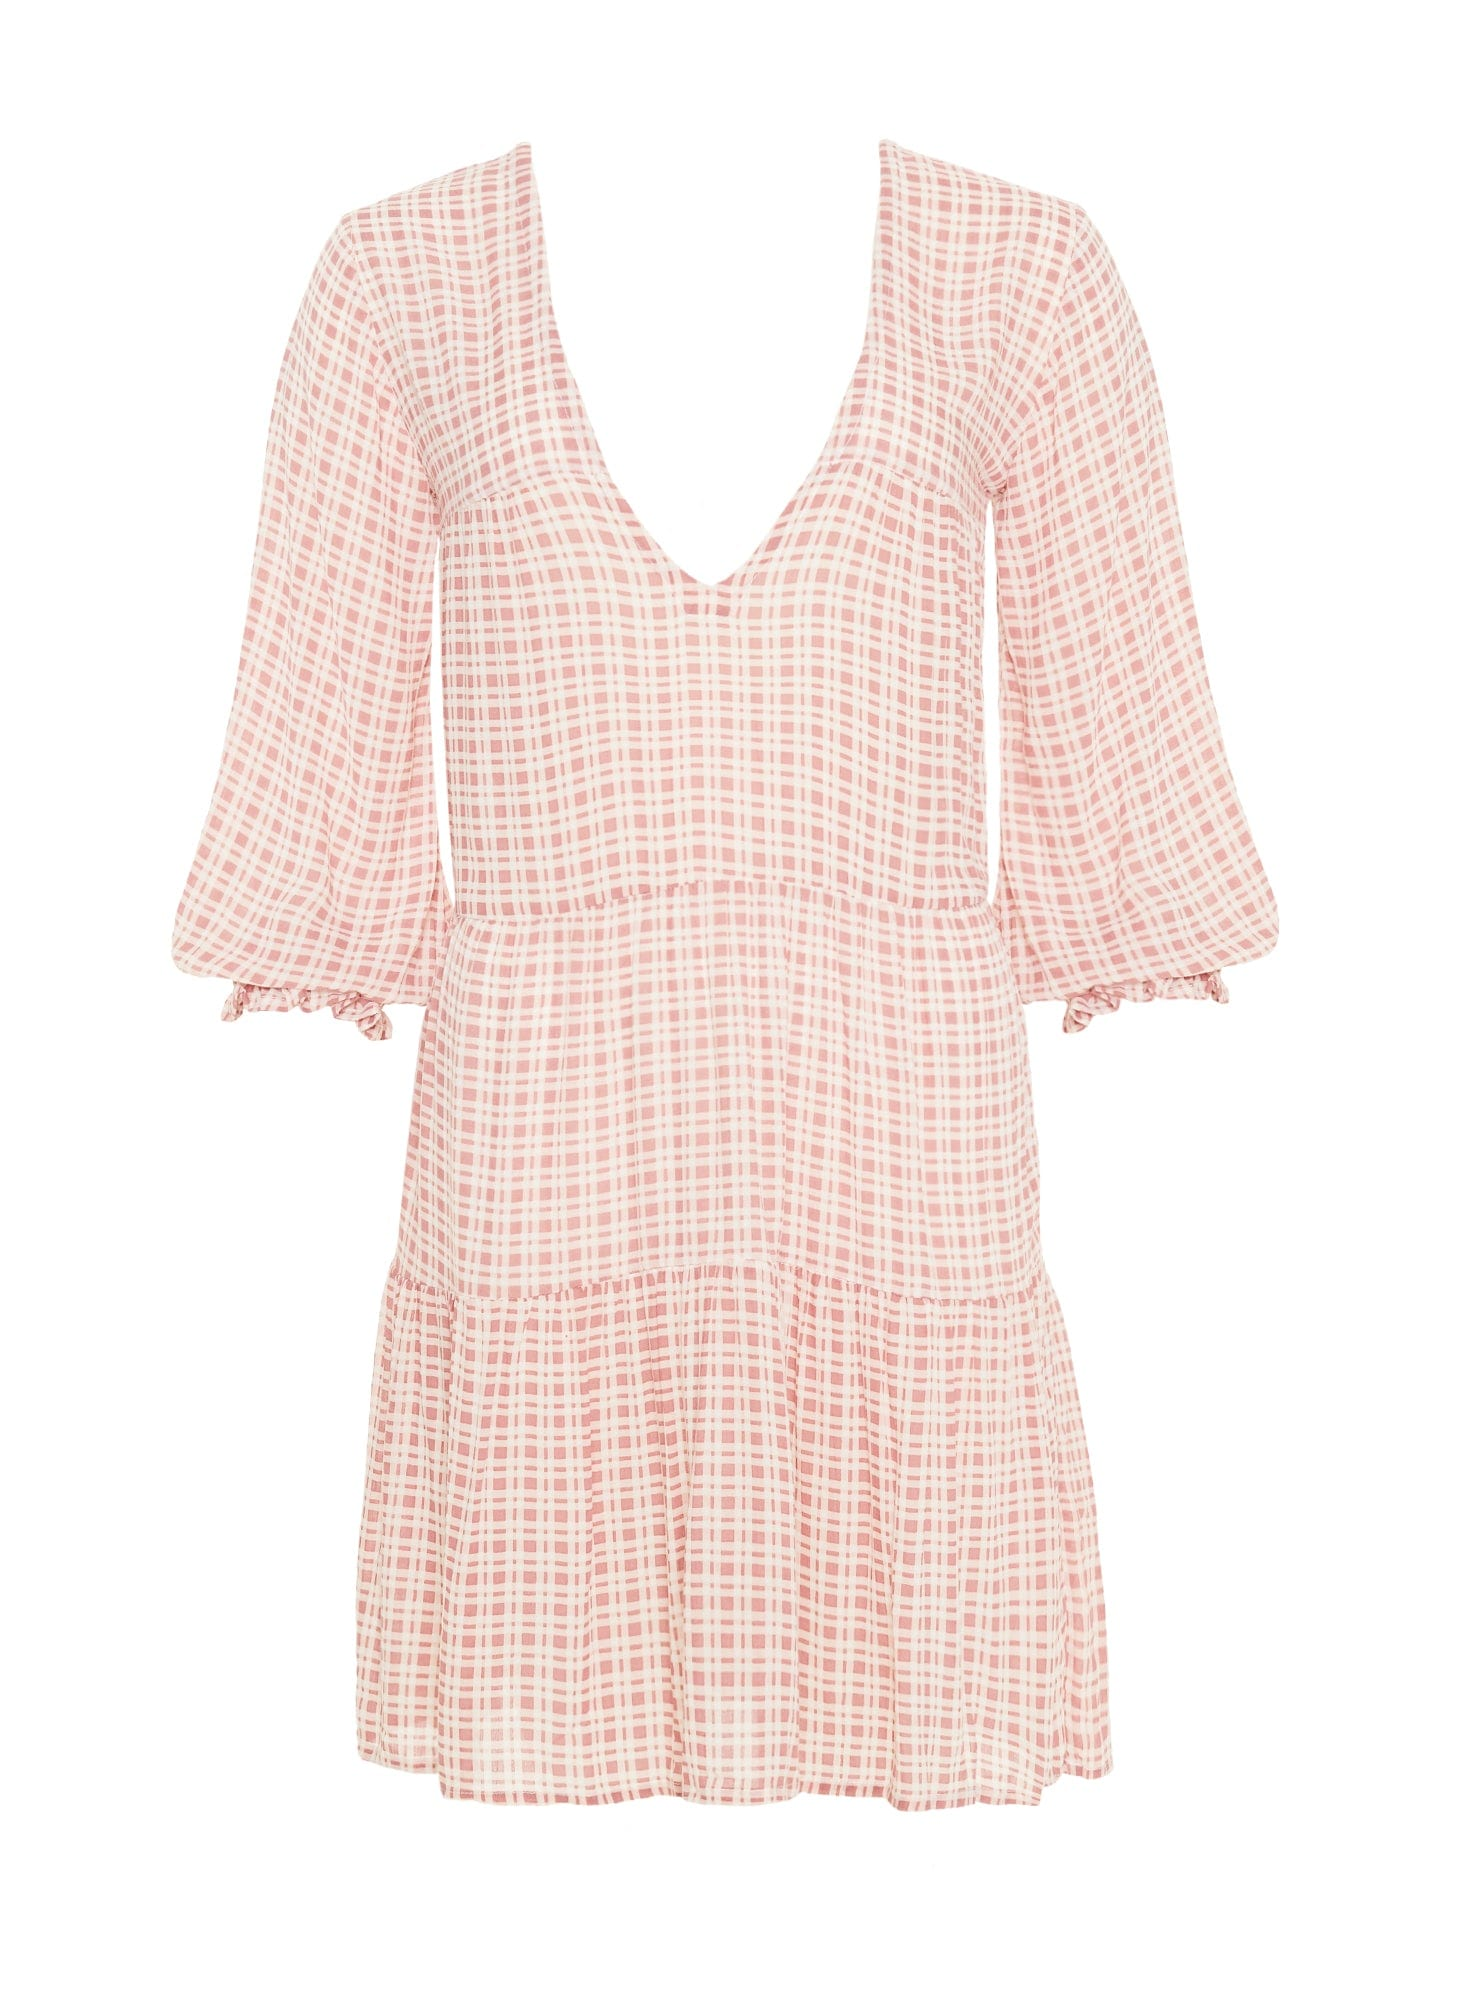 EMILINAH CHECK PRINT - VINTAGE PINK - LE GALLION DRESS